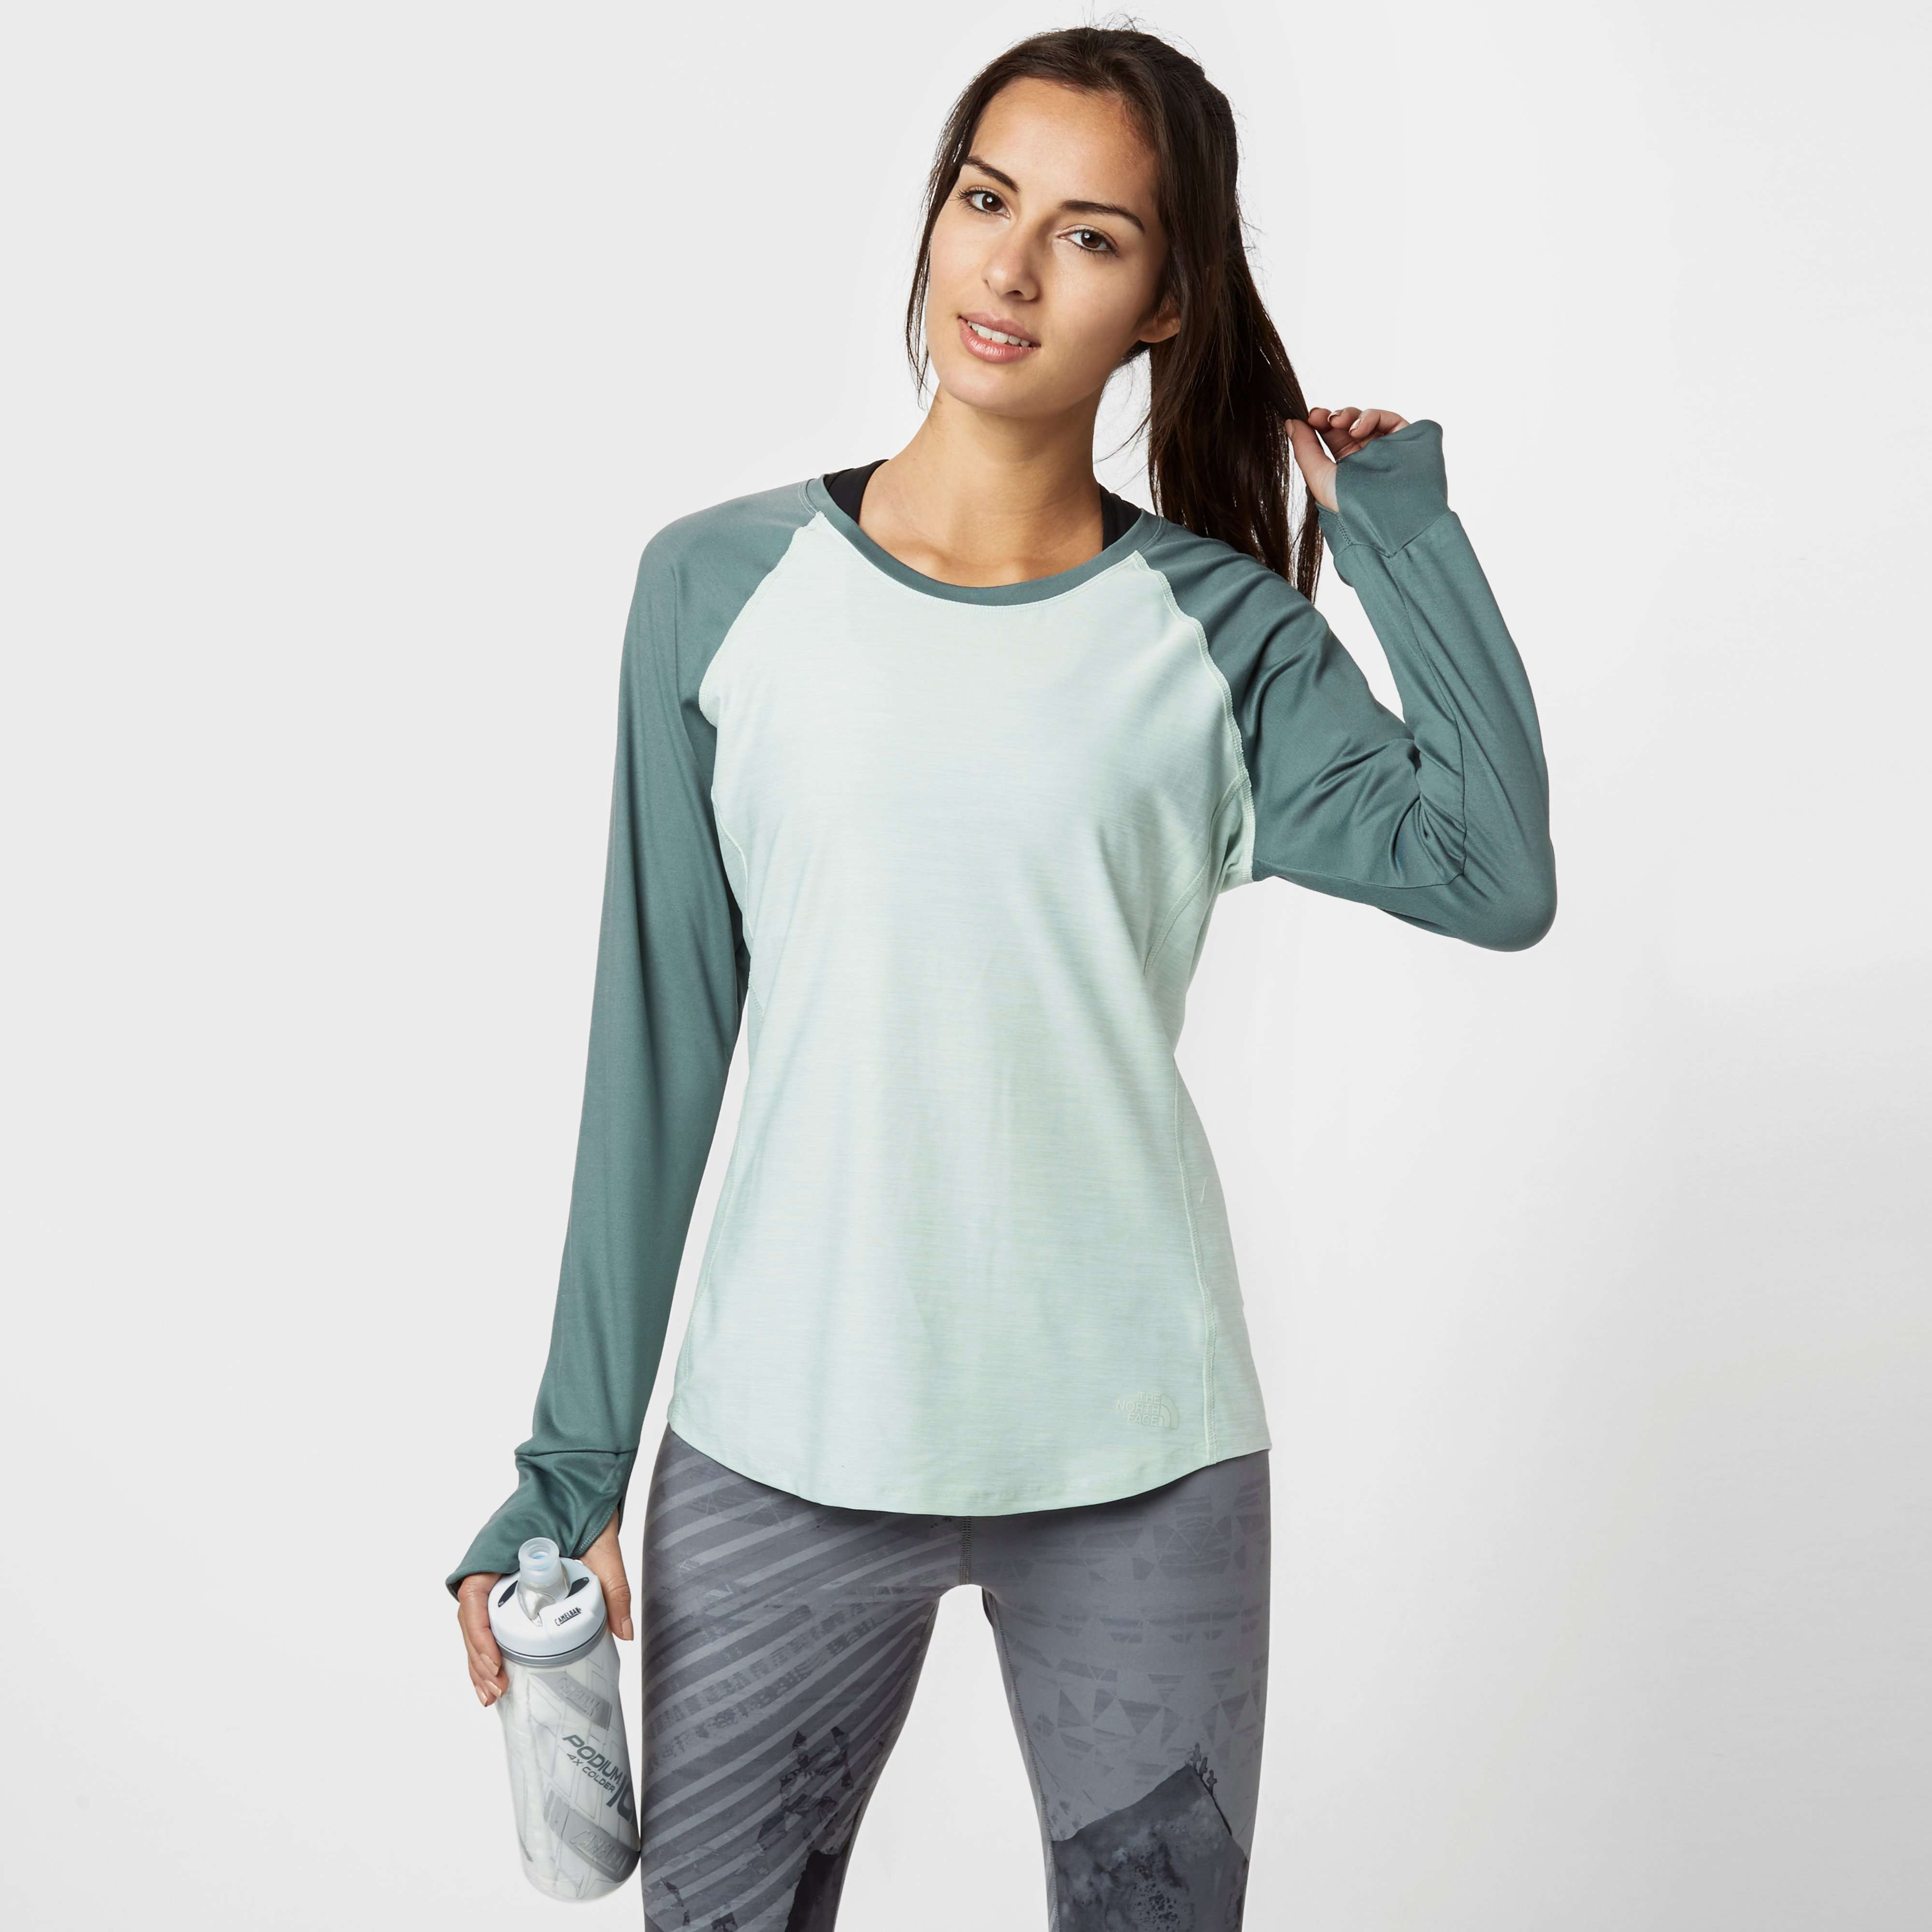 THE NORTH FACE Women's Motivation Long Sleeve Jersey